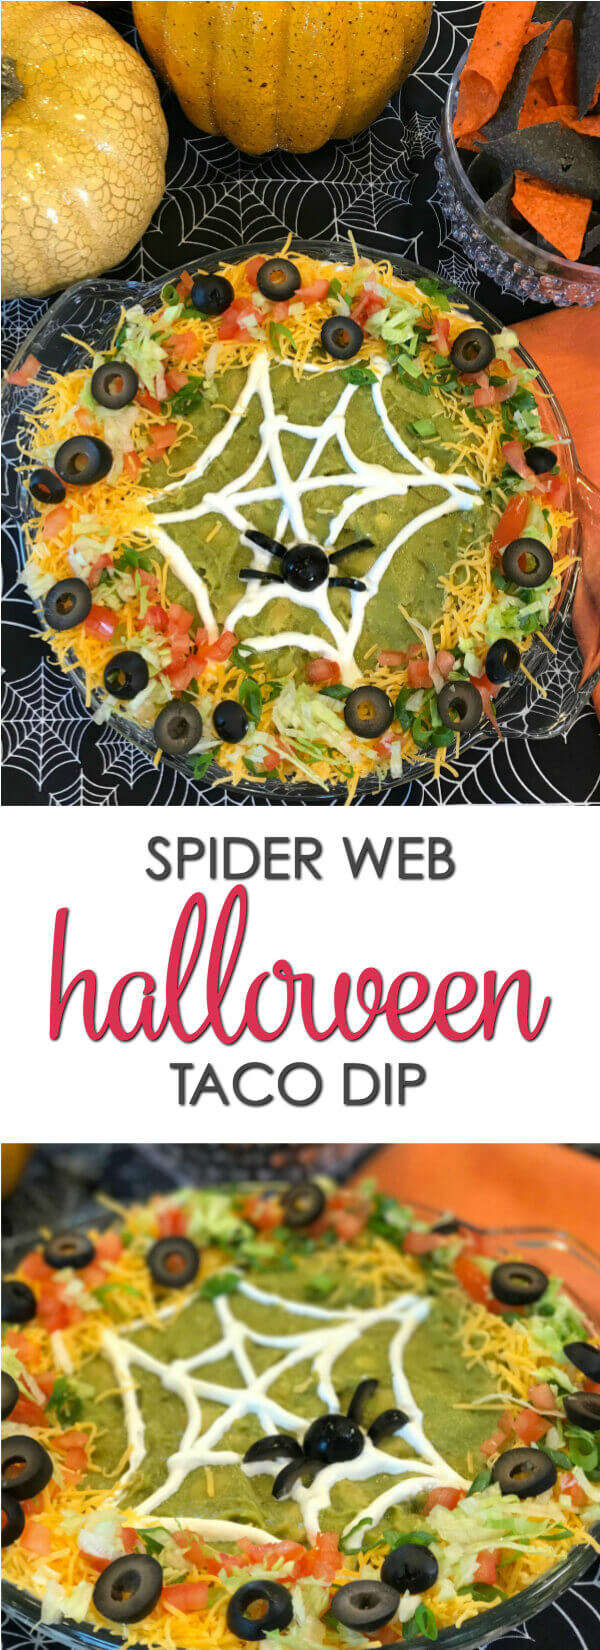 Halloween Taco Dip - this easy taco dip recipe takes minutes to make and is a great Halloween recipe for parties